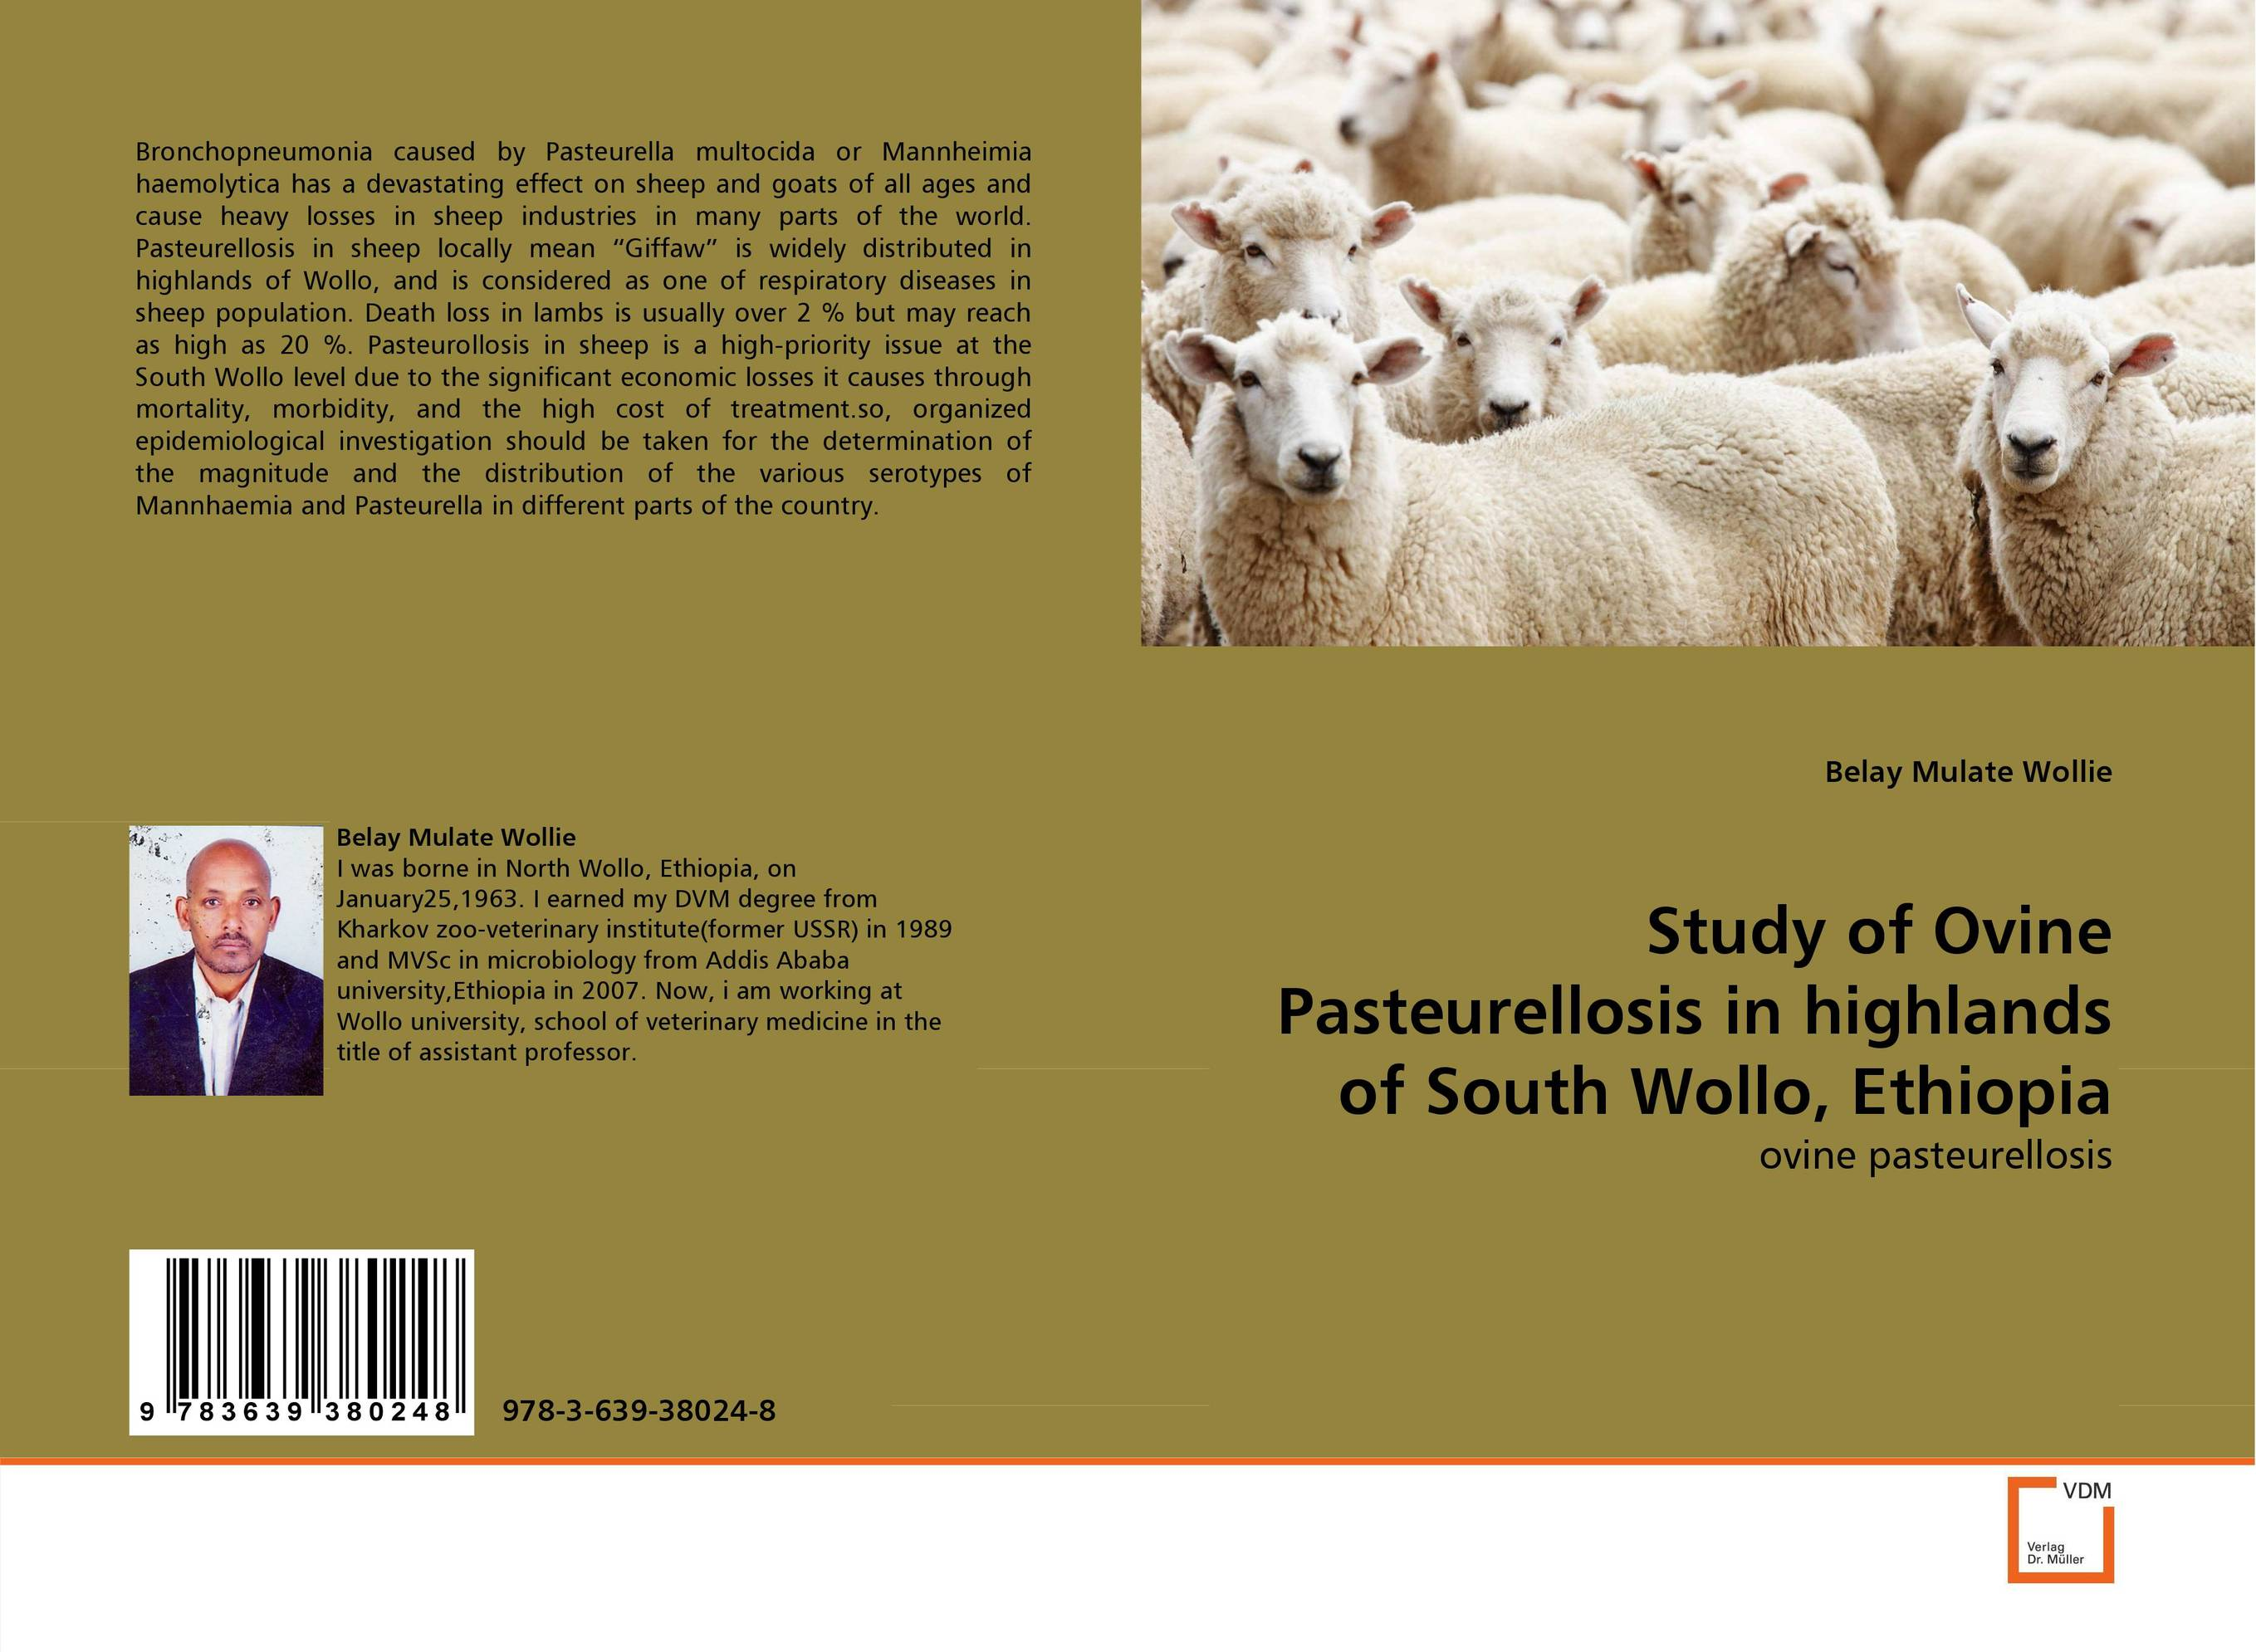 Study of Ovine Pasteurellosis in highlands of South Wollo, Ethiopia